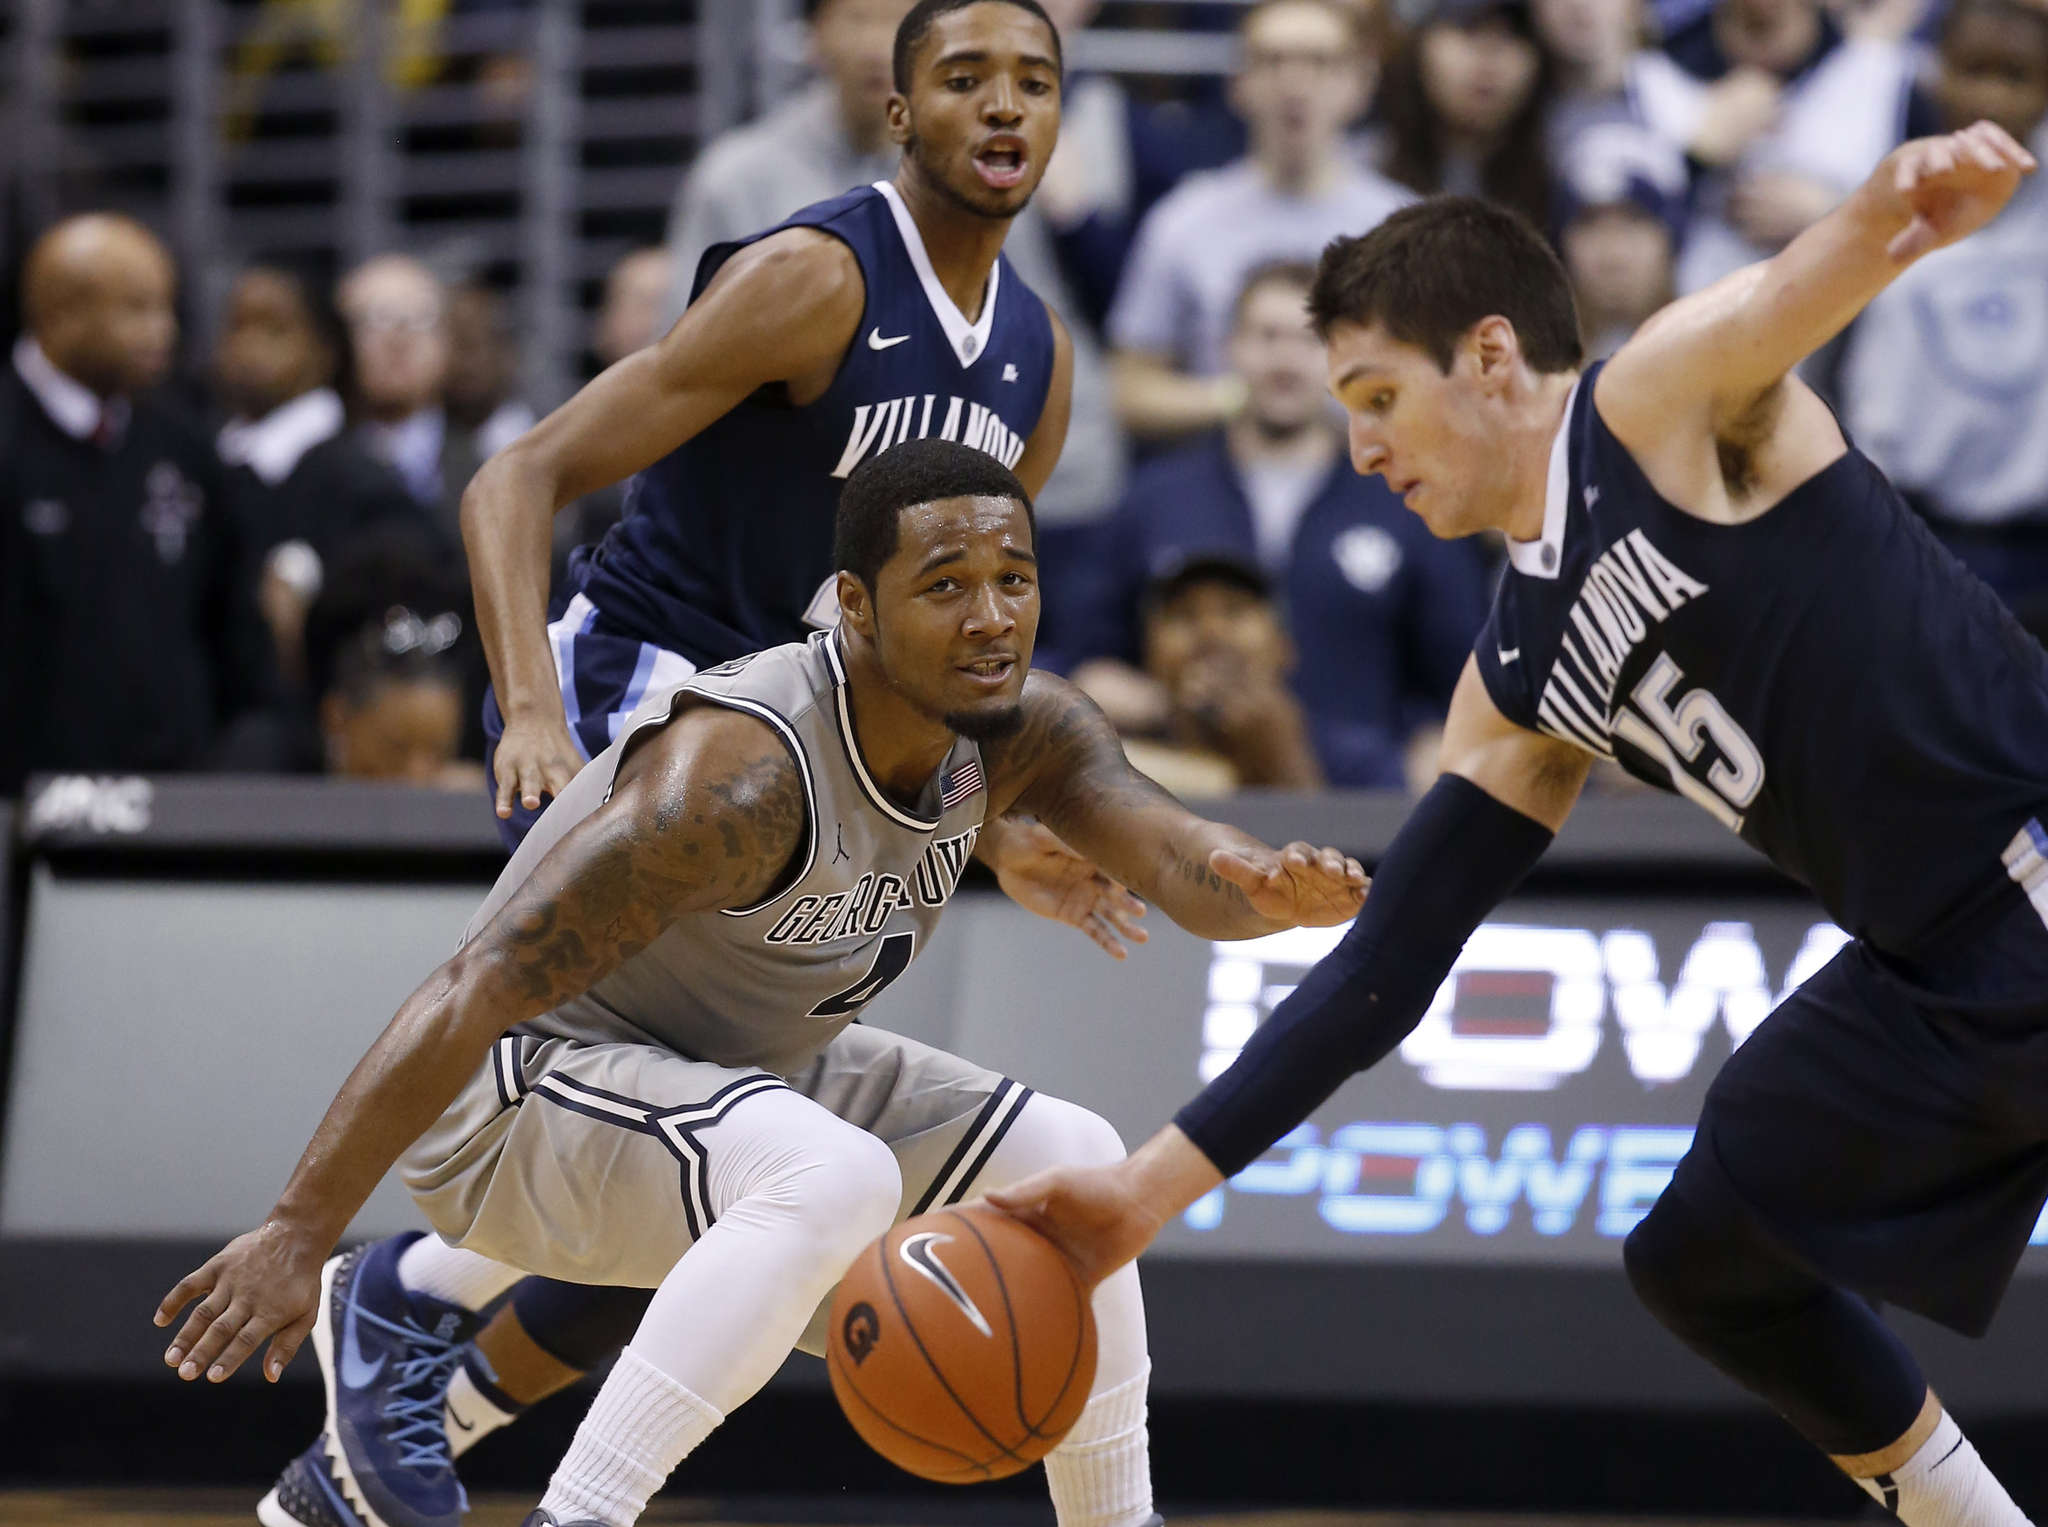 Villanova´s Ryan Arcidiacono steals ball from Georgetown´s D´Vauntes Smith-Rivera during first half of Saturday´s game. ASSOCIATED PRESS